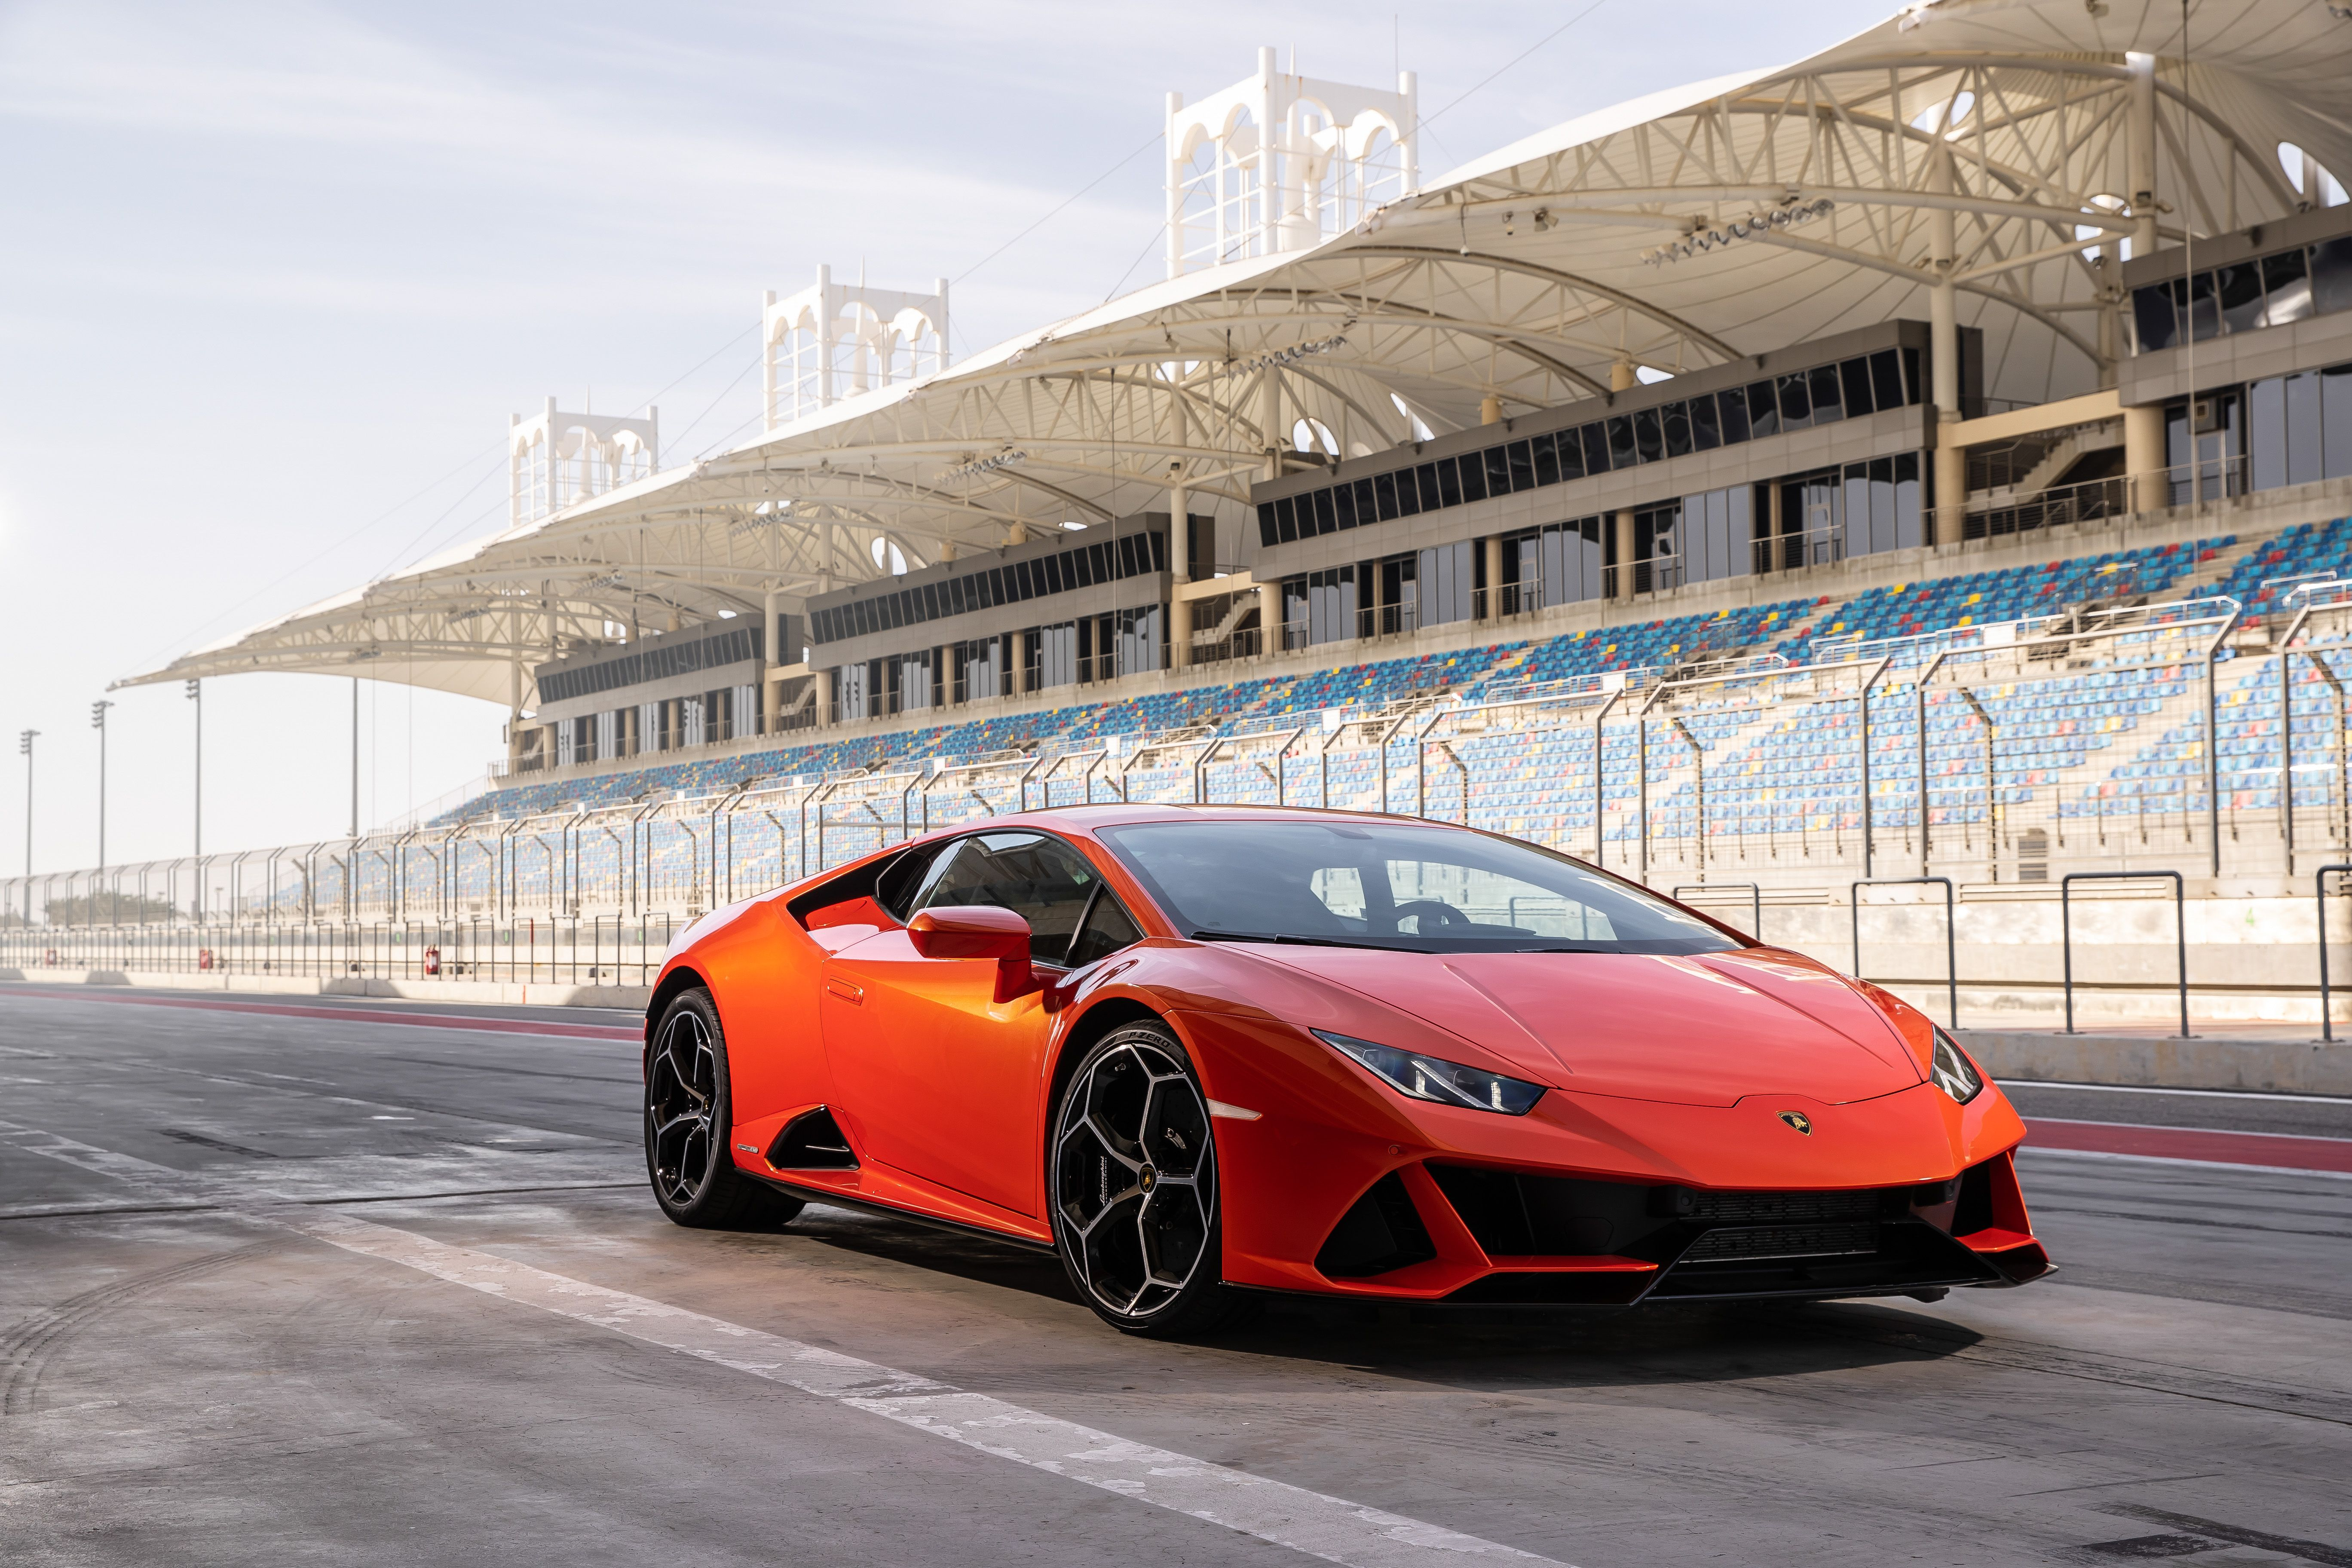 2019 Lamborghini Huracán Review, Pricing, and Specs